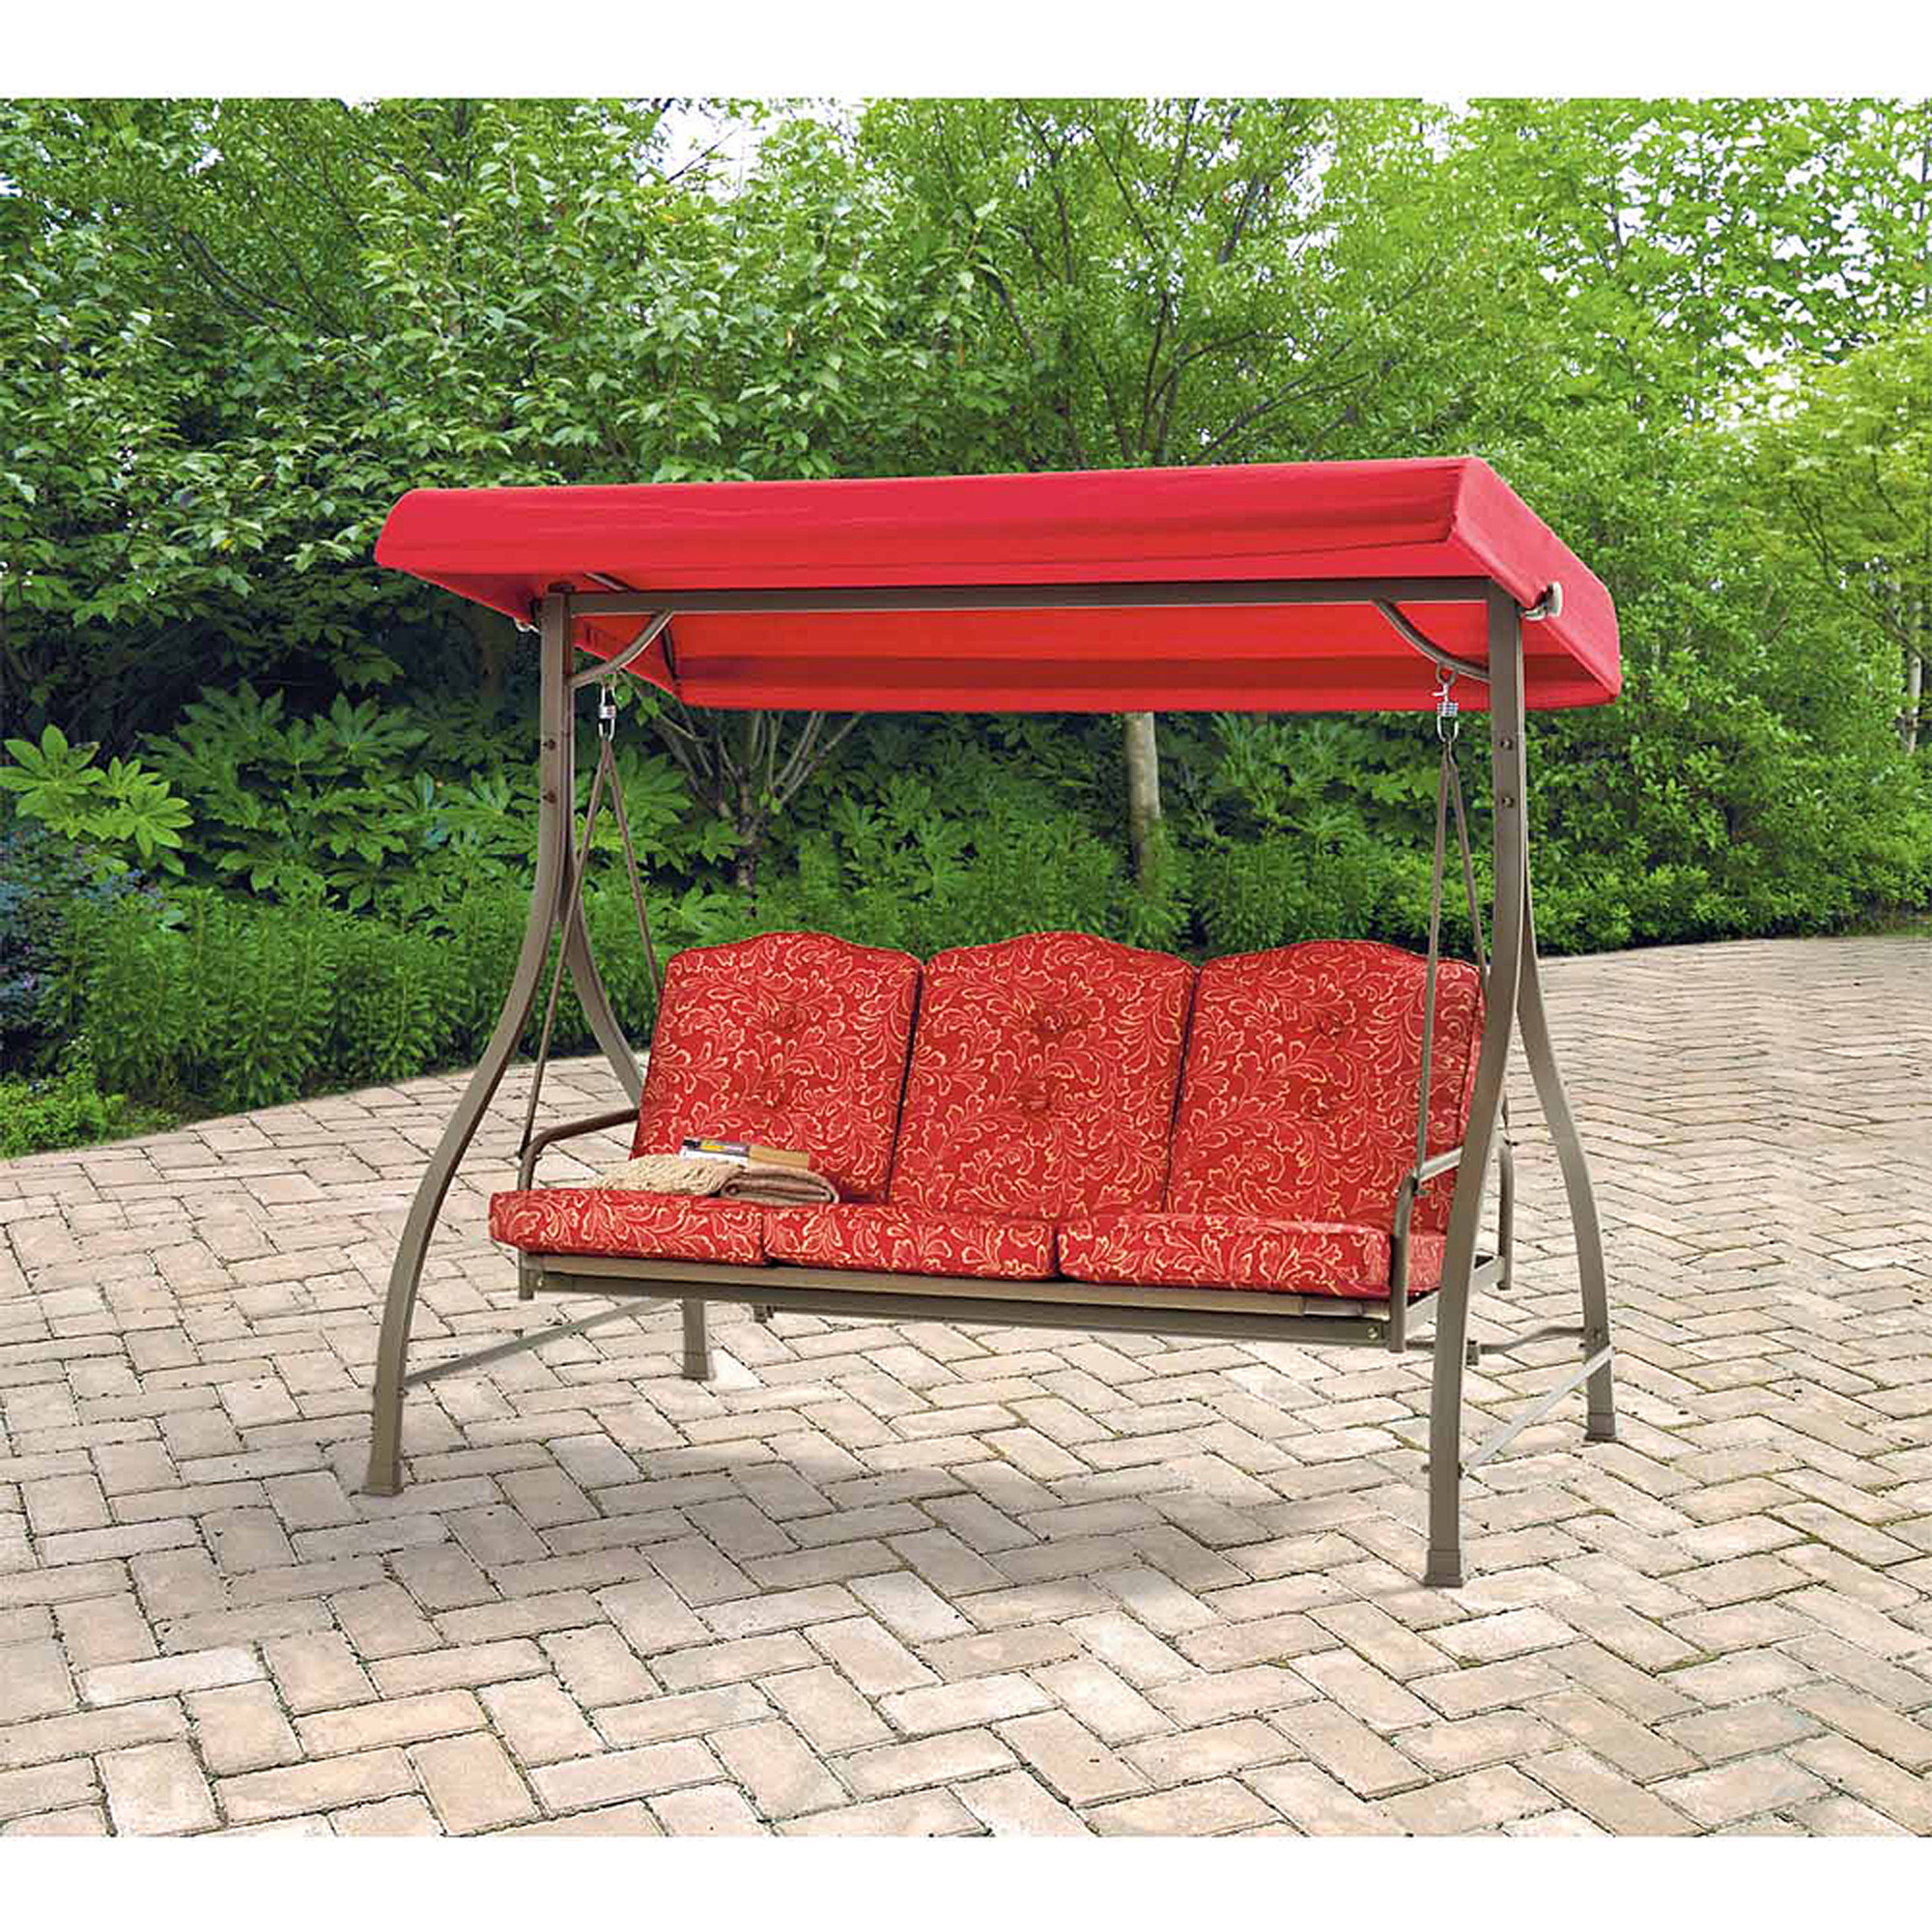 Mainstays Warner Heights Converting Outdoor Swing Hammock Red Seats 3